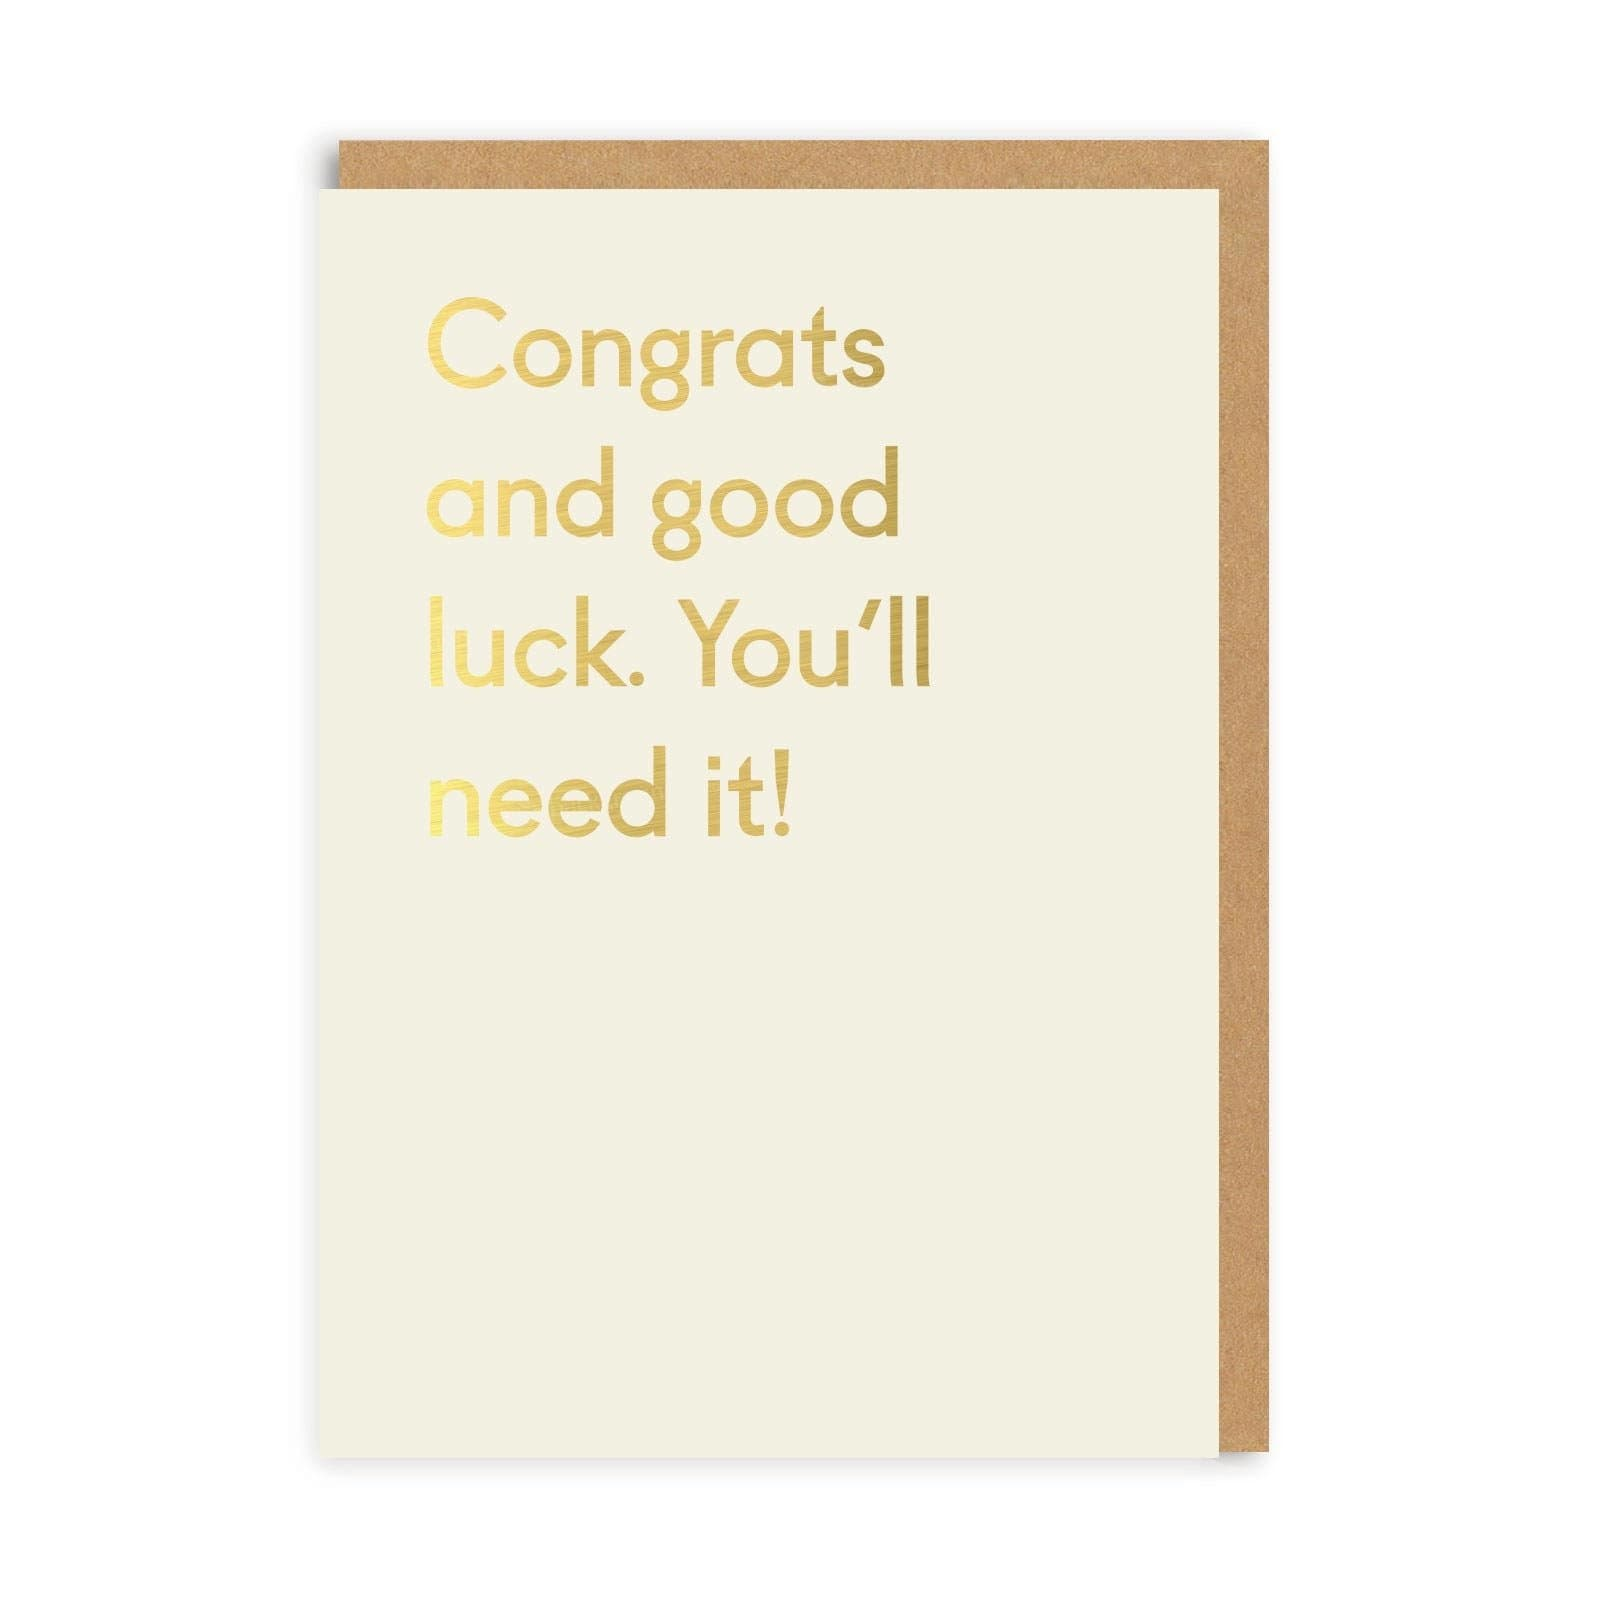 Good Luck! You'll Need It Congratulations Greeting Card